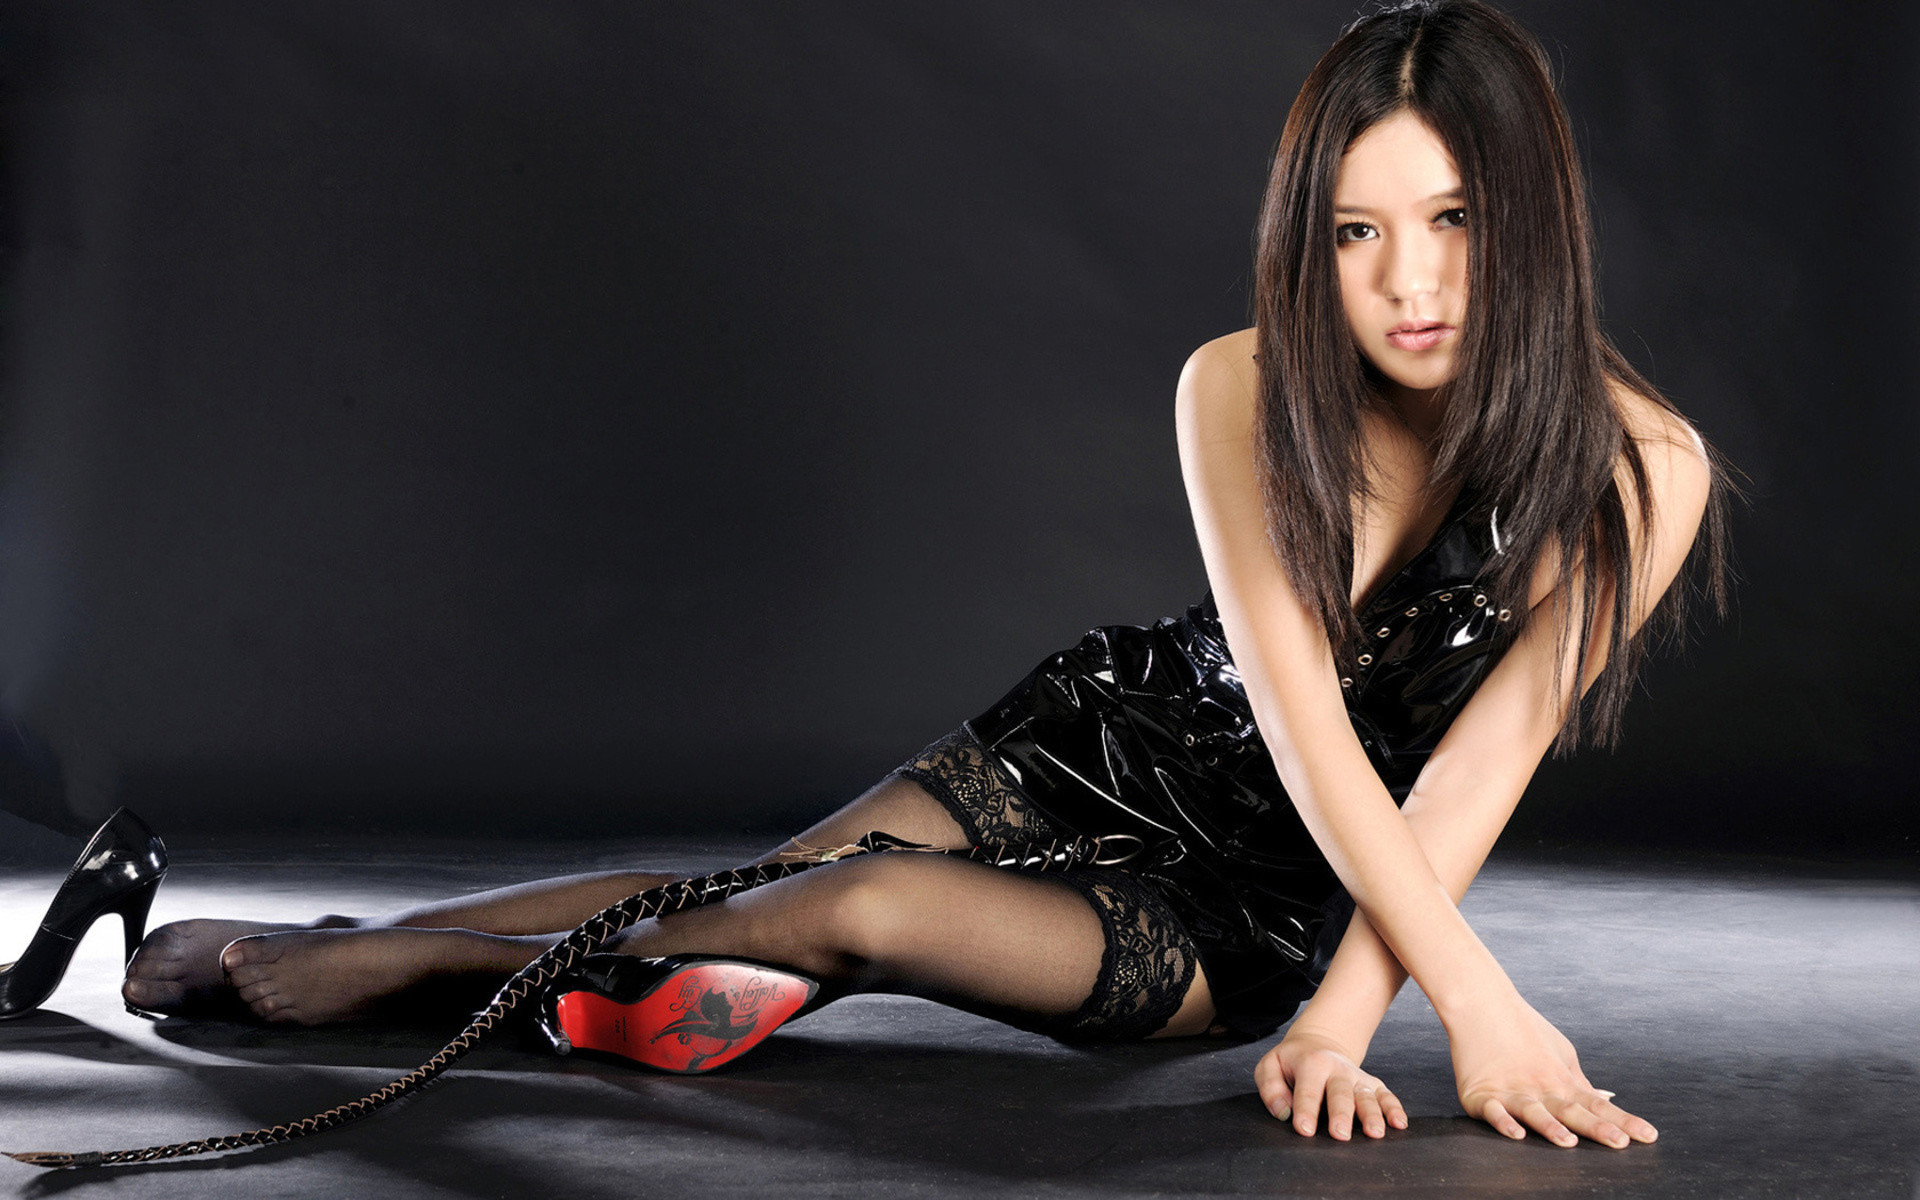 Sexy bdsm wallpapers erotic